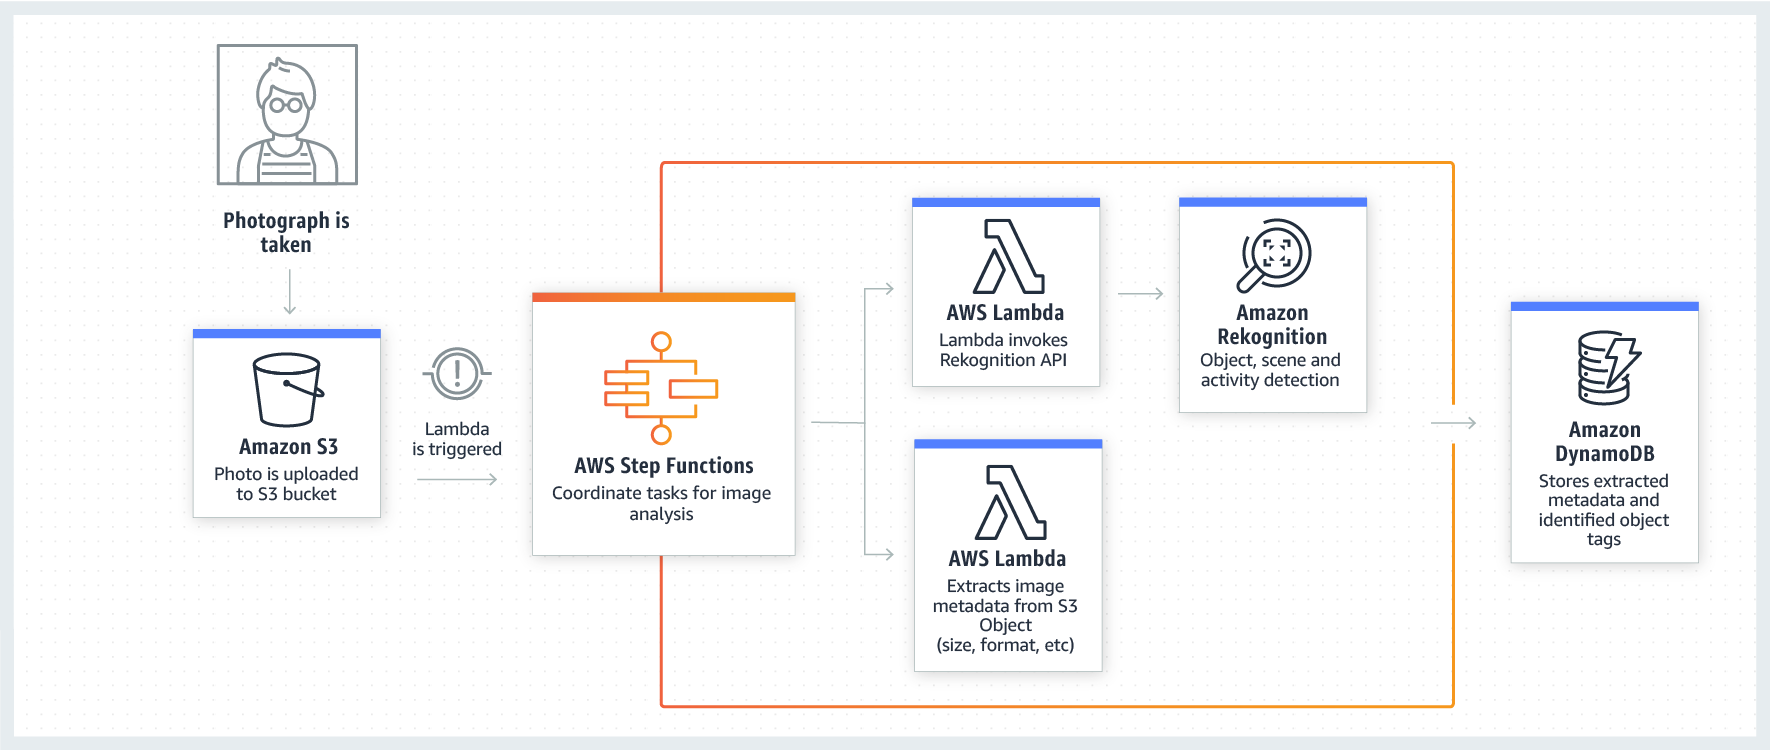 product-page-diagram-aws-step-functions-use-case-aws-lambda